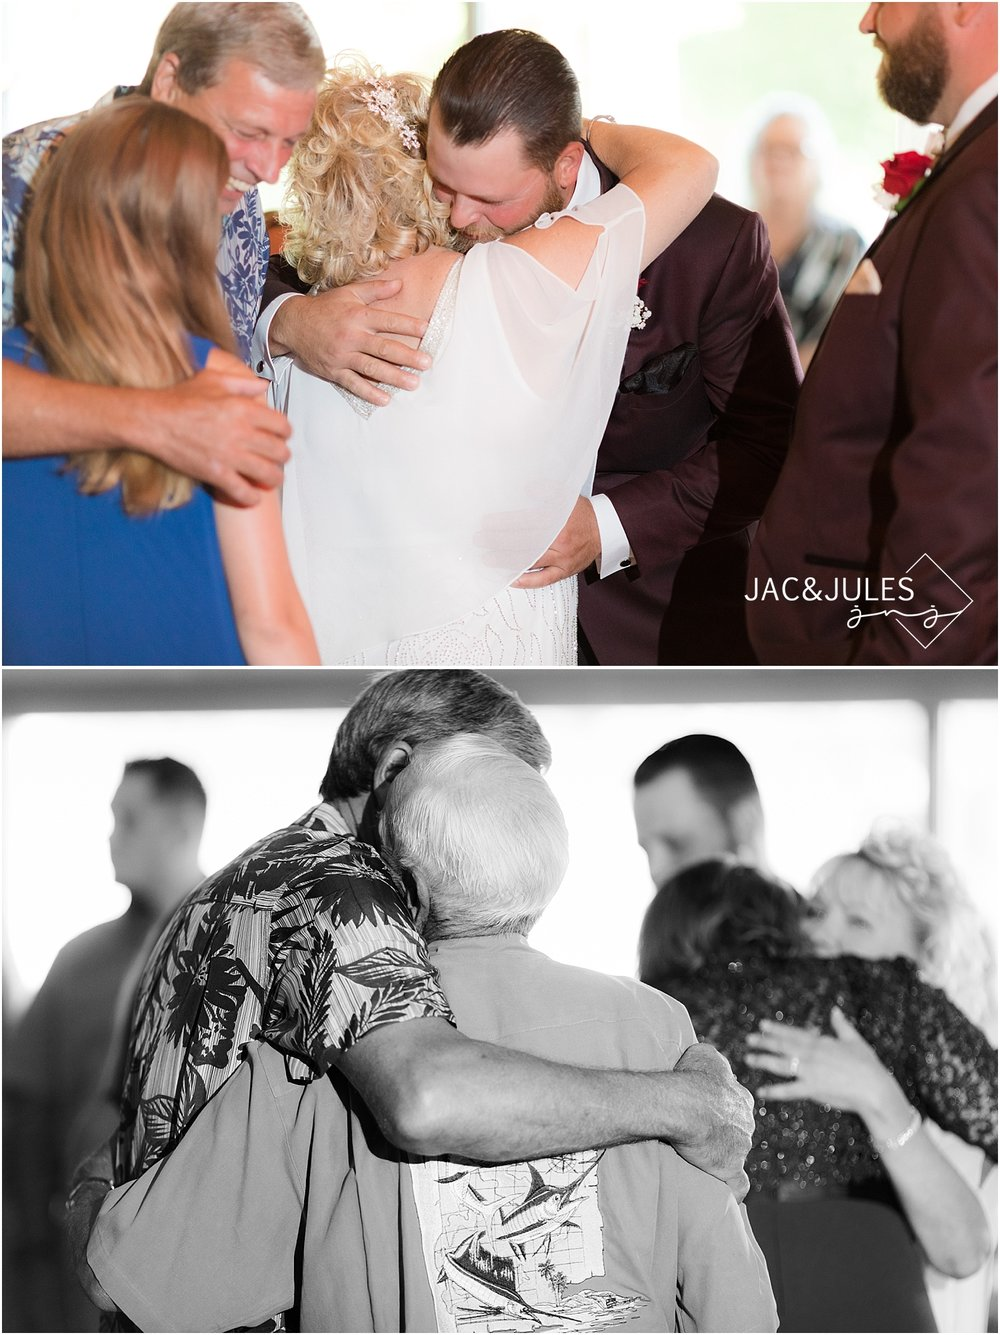 family hugging after wedding ceremony at captains inn in forked river nj